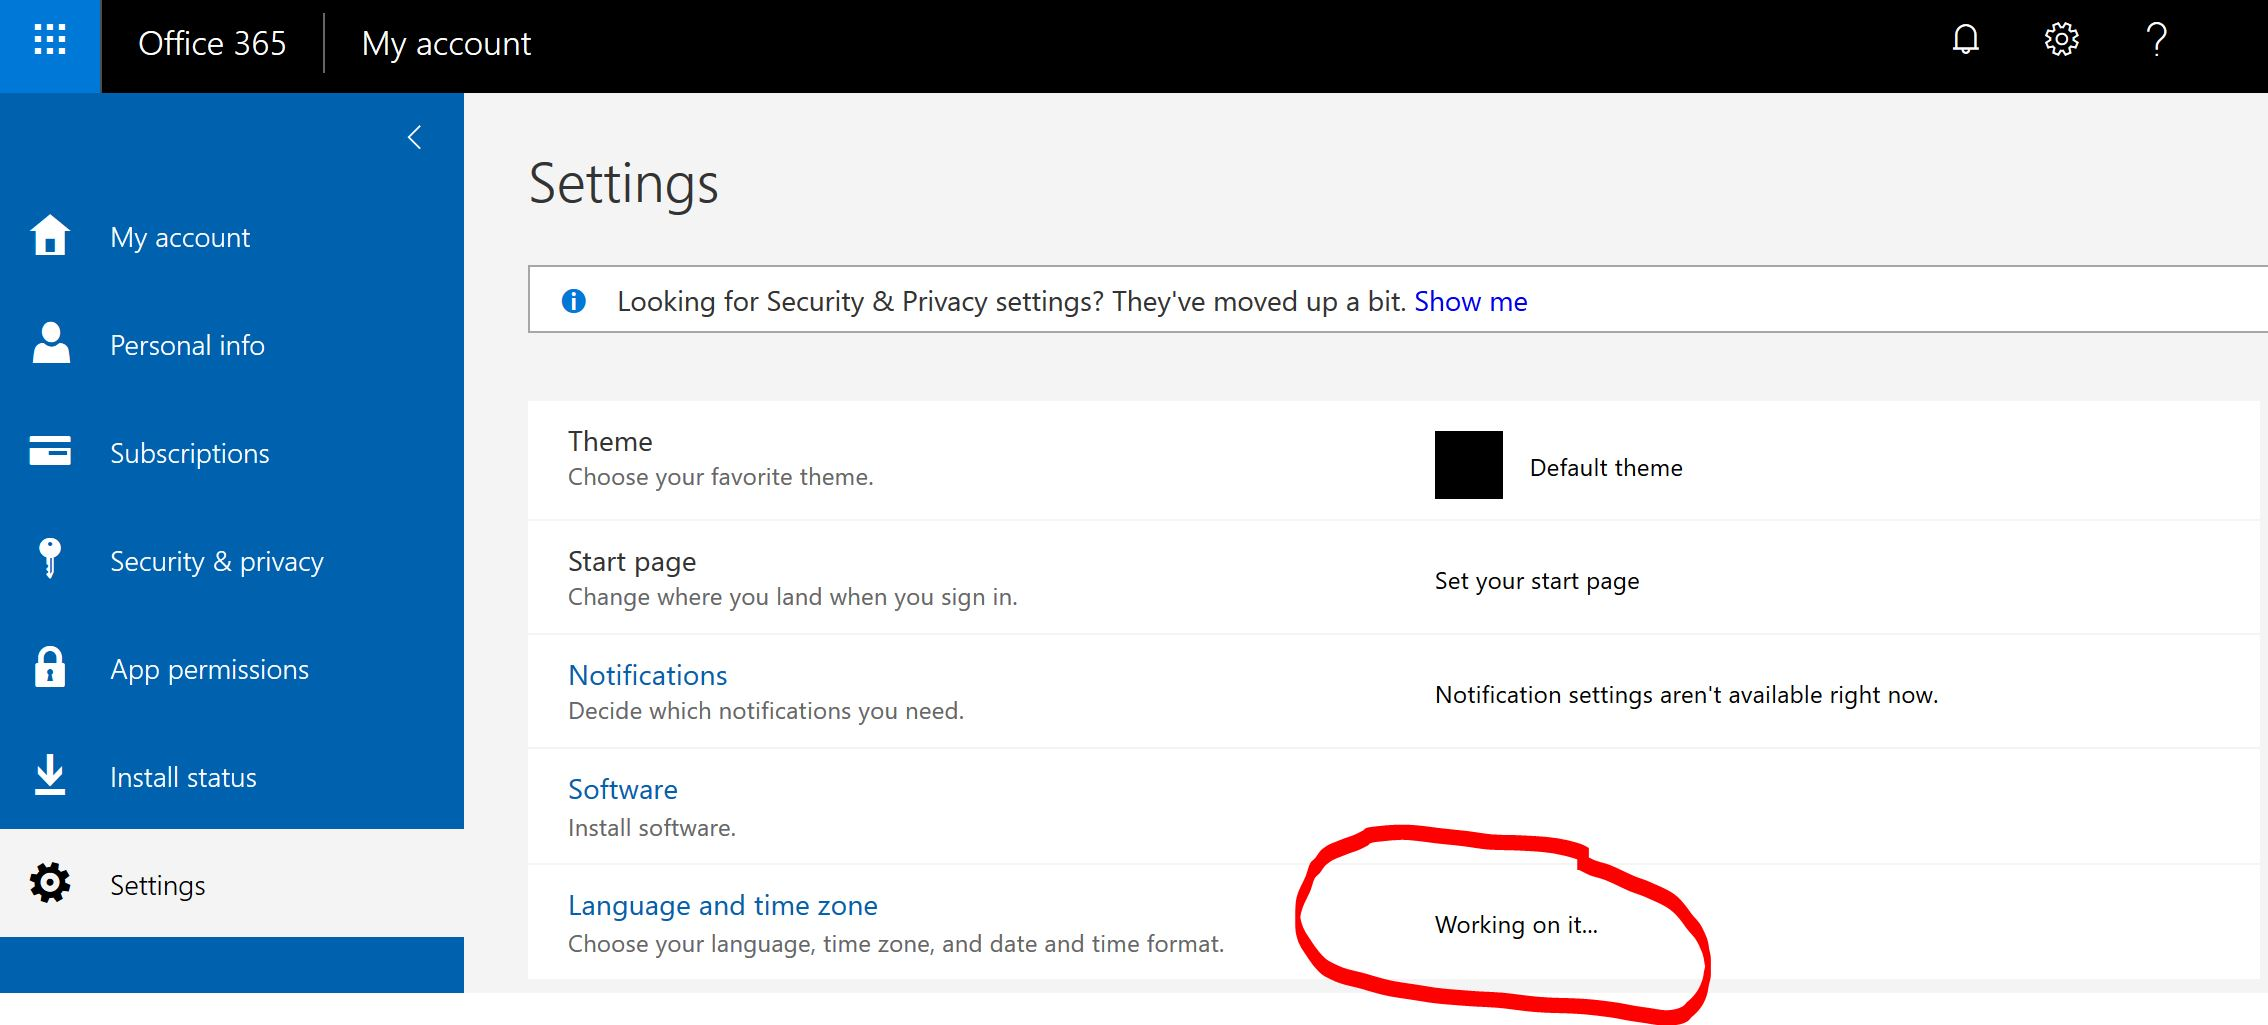 Unable to change language to English in OneDrive